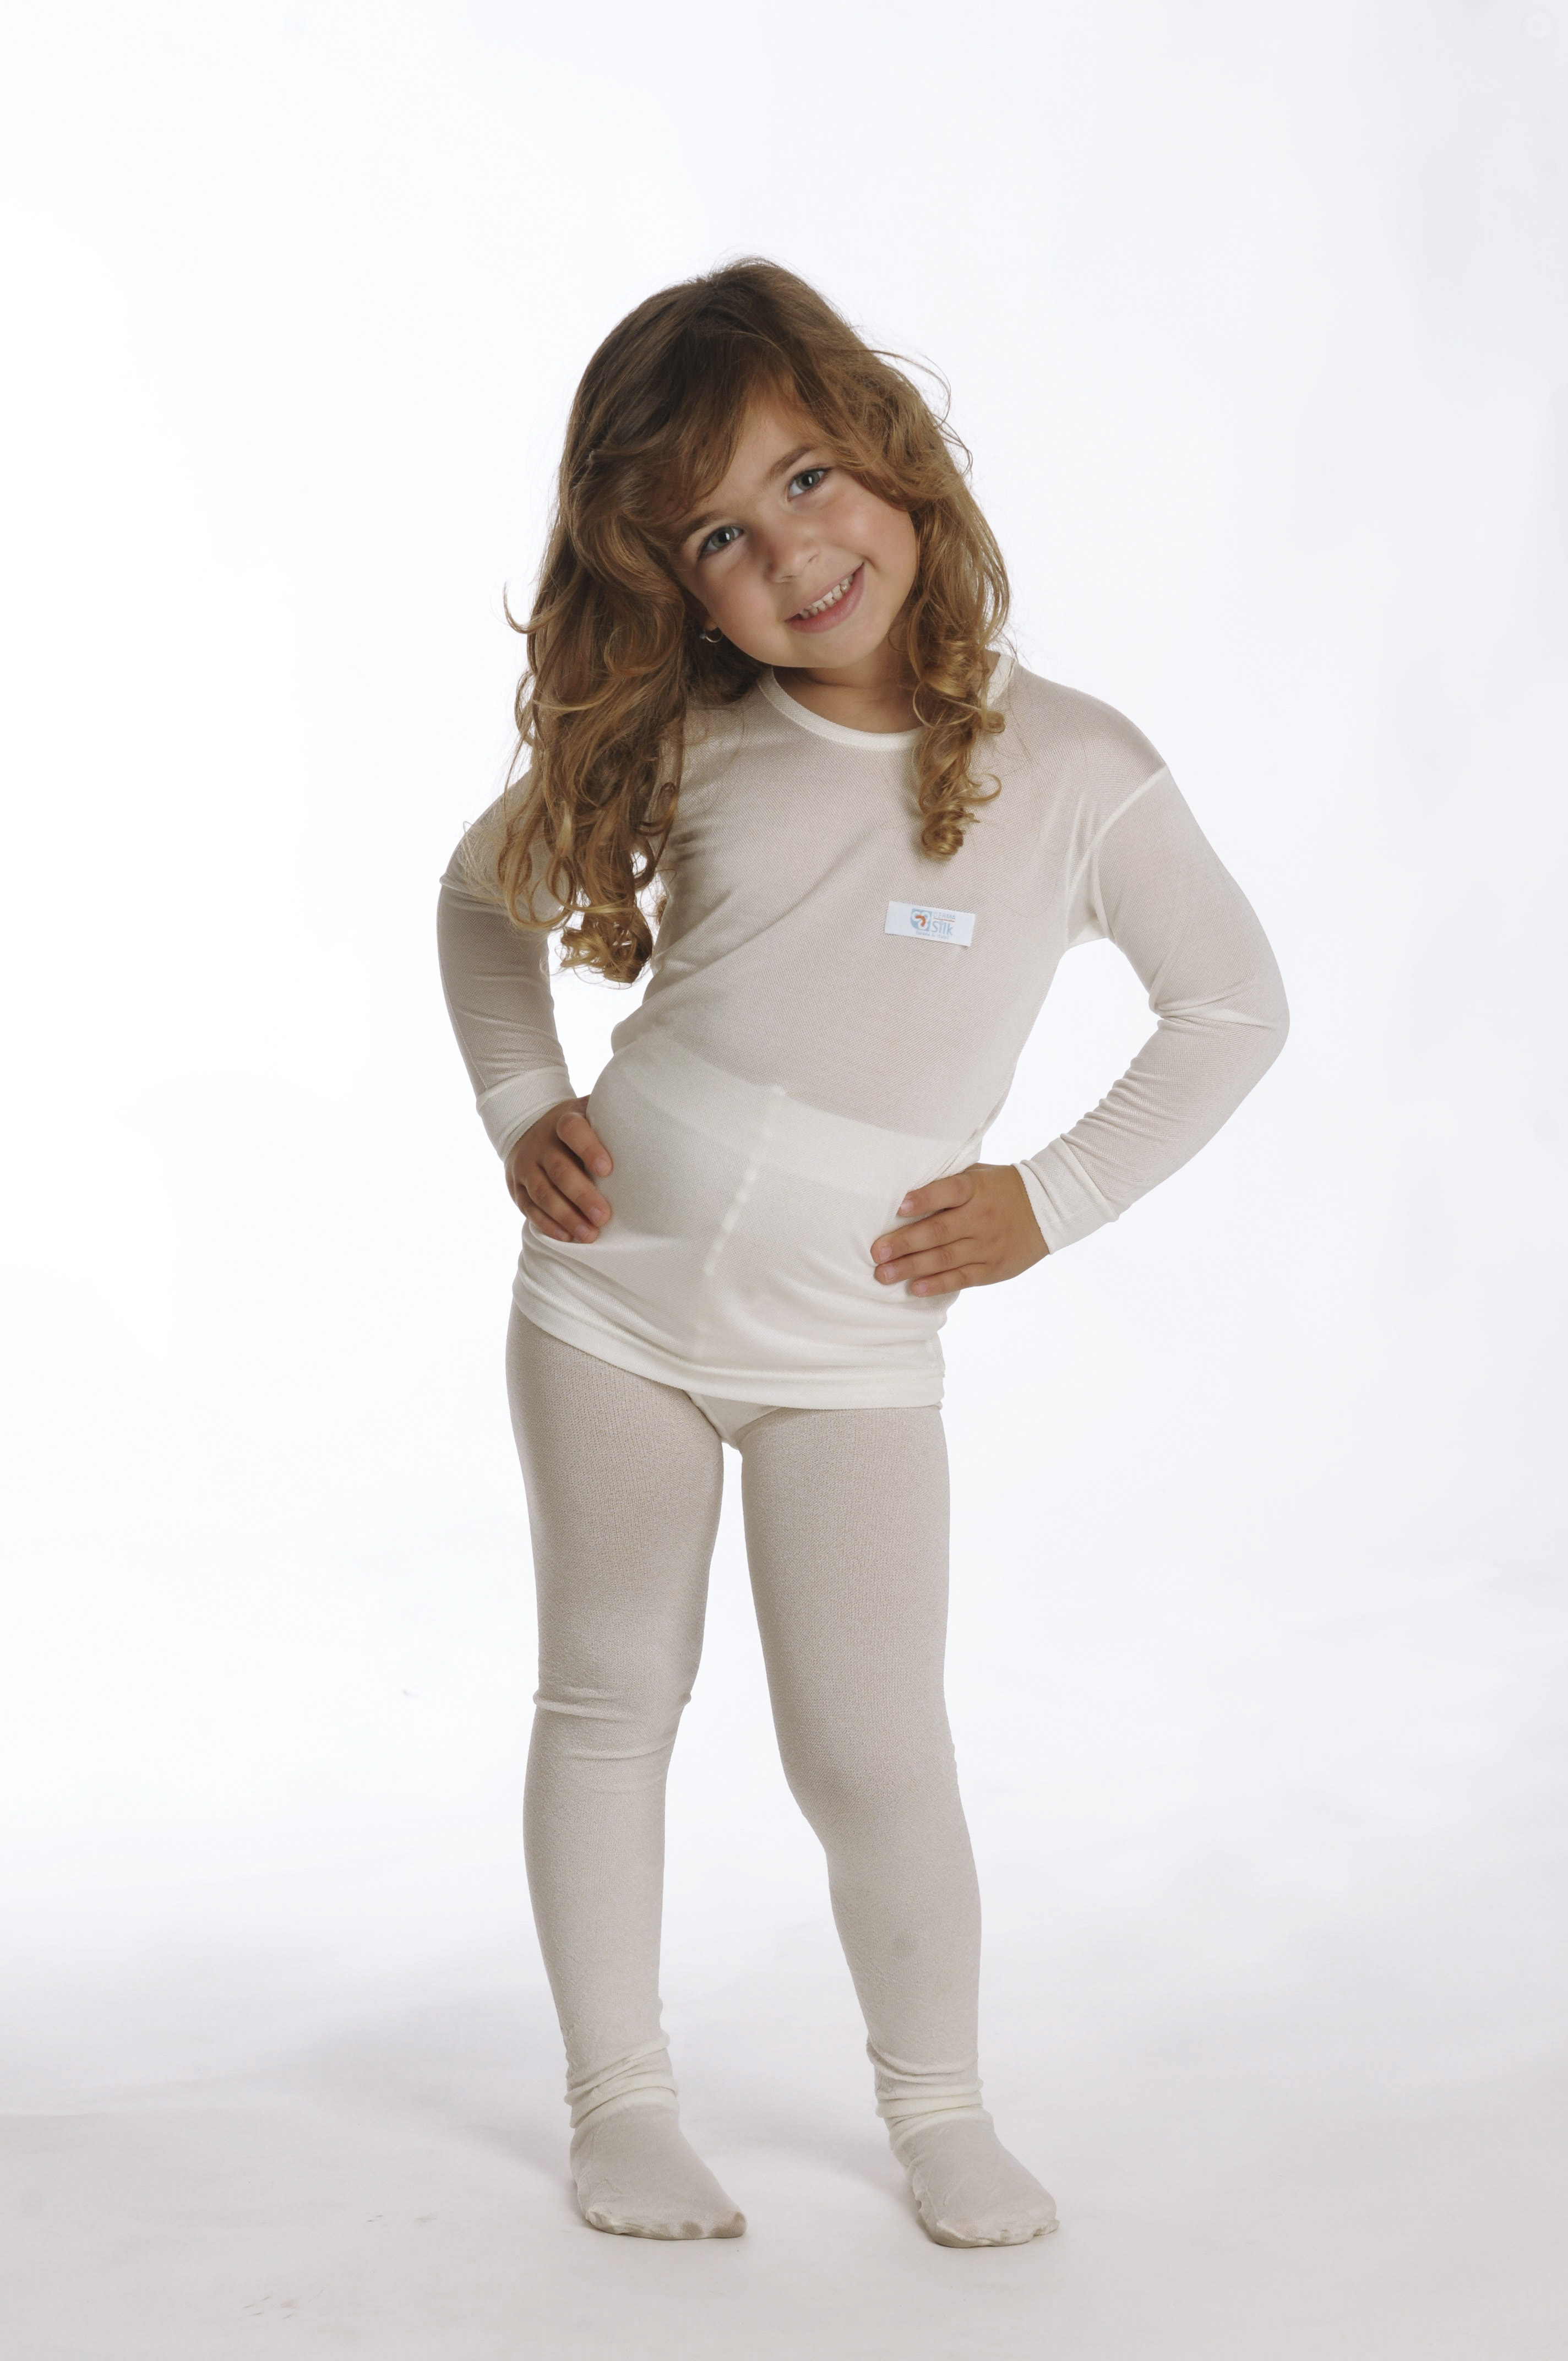 Girls Kids Tights Soft Velvet Pantyhose Hosiery Ballet Dance Socks Candy Colors. Unbranded. $ Buy It Now. Free Shipping. BLOCH Kids' Dance Leggings and Tights. Eurotard Kids' Dance Leggings and Tights. Leo's Kids' Dance Leggings and Tights. Feedback. Leave feedback about your eBay search experience.